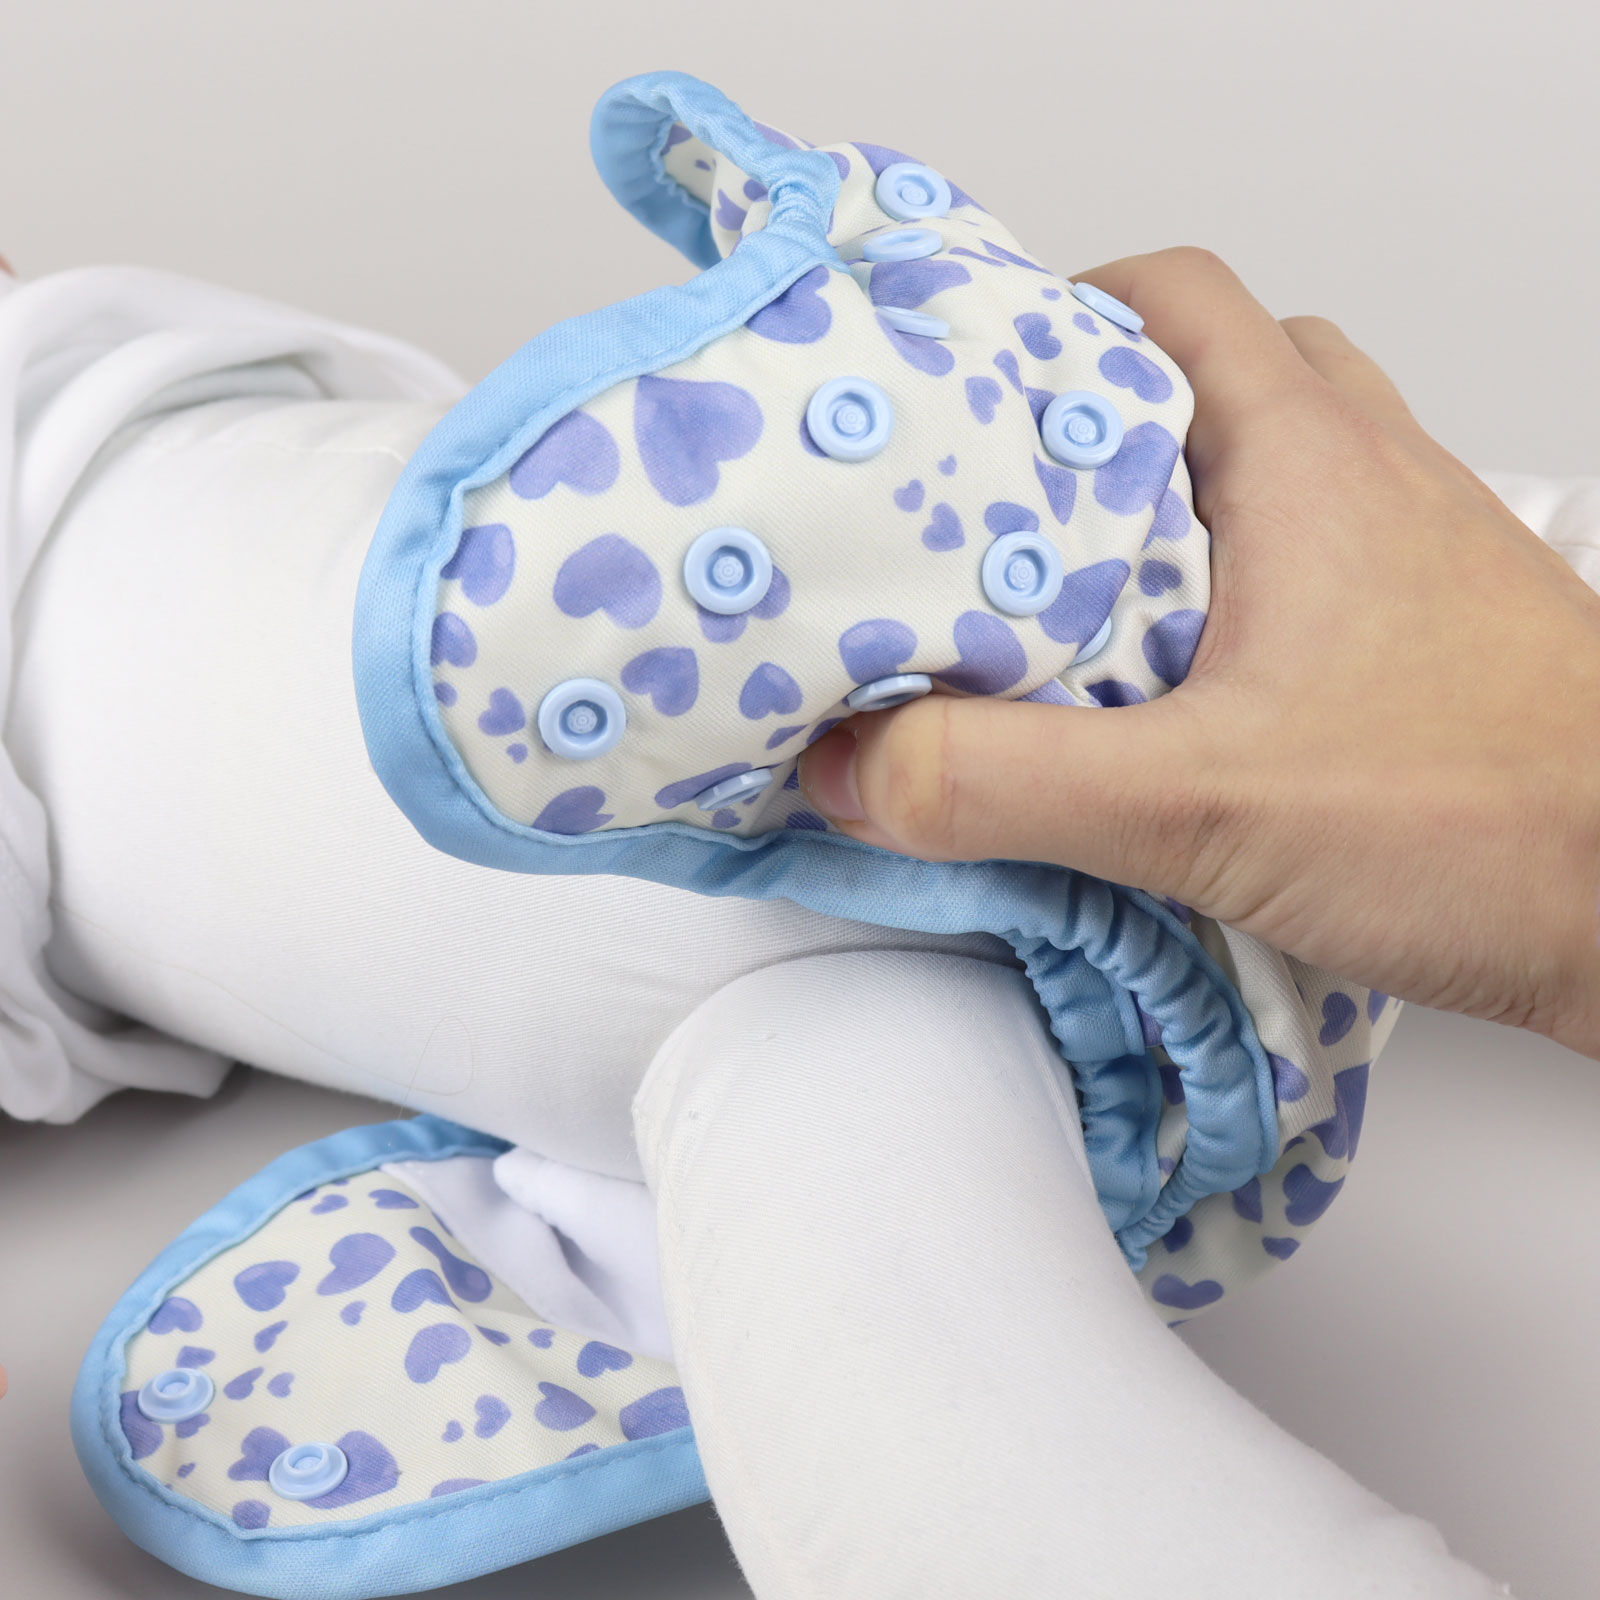 Fitting Cloth Nappies | The Nappy Gurus